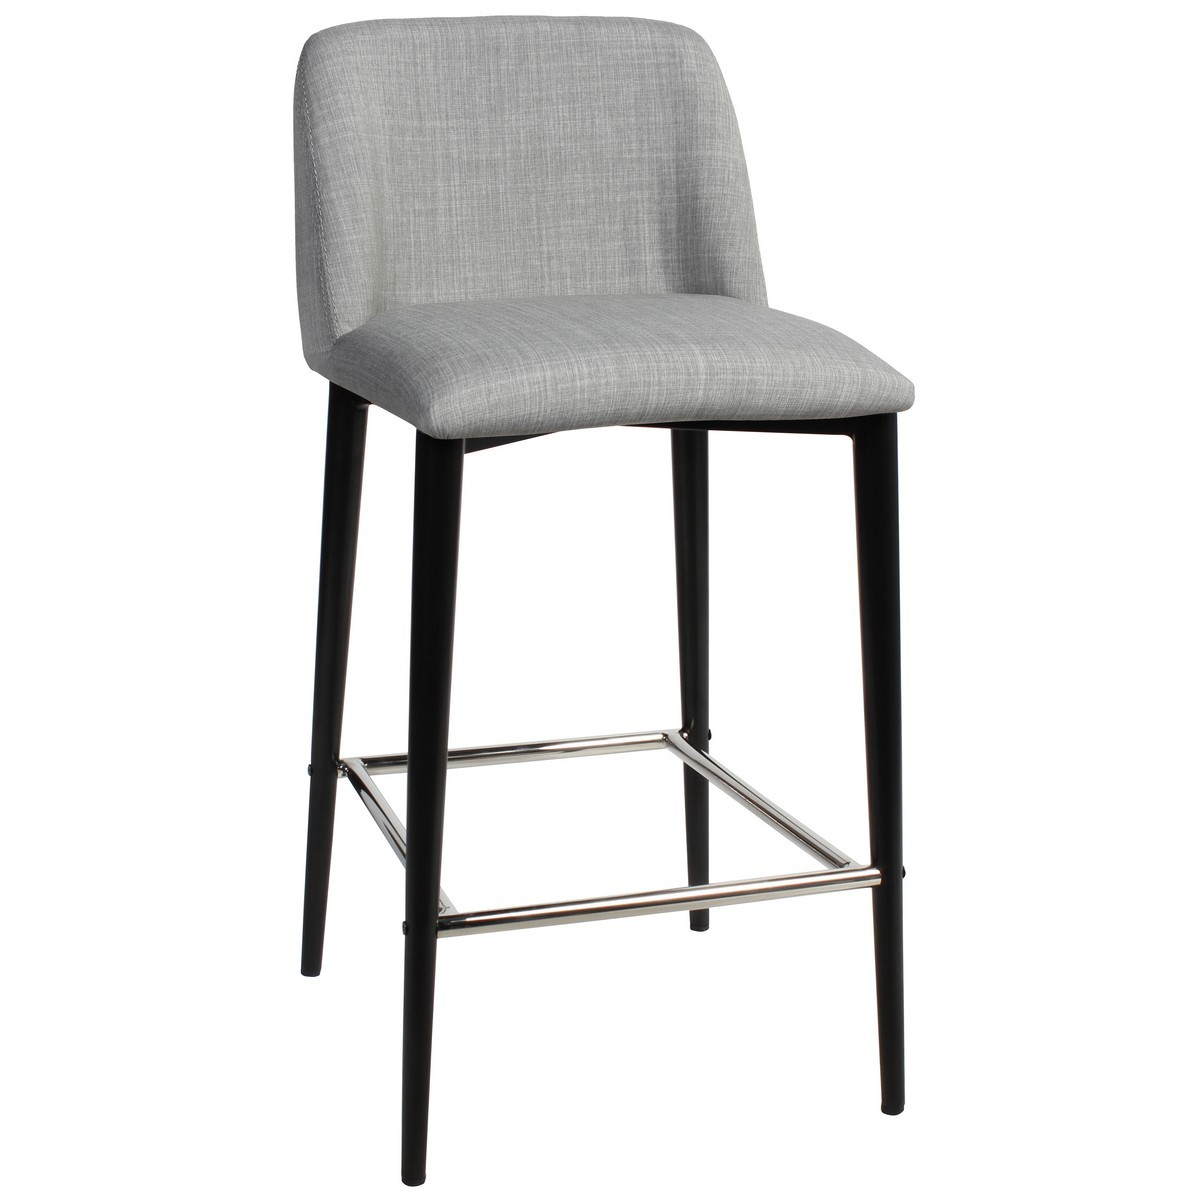 Clovelly Commercial Grade Fabric Counter Stool, Metal Leg, Light Grey / Black